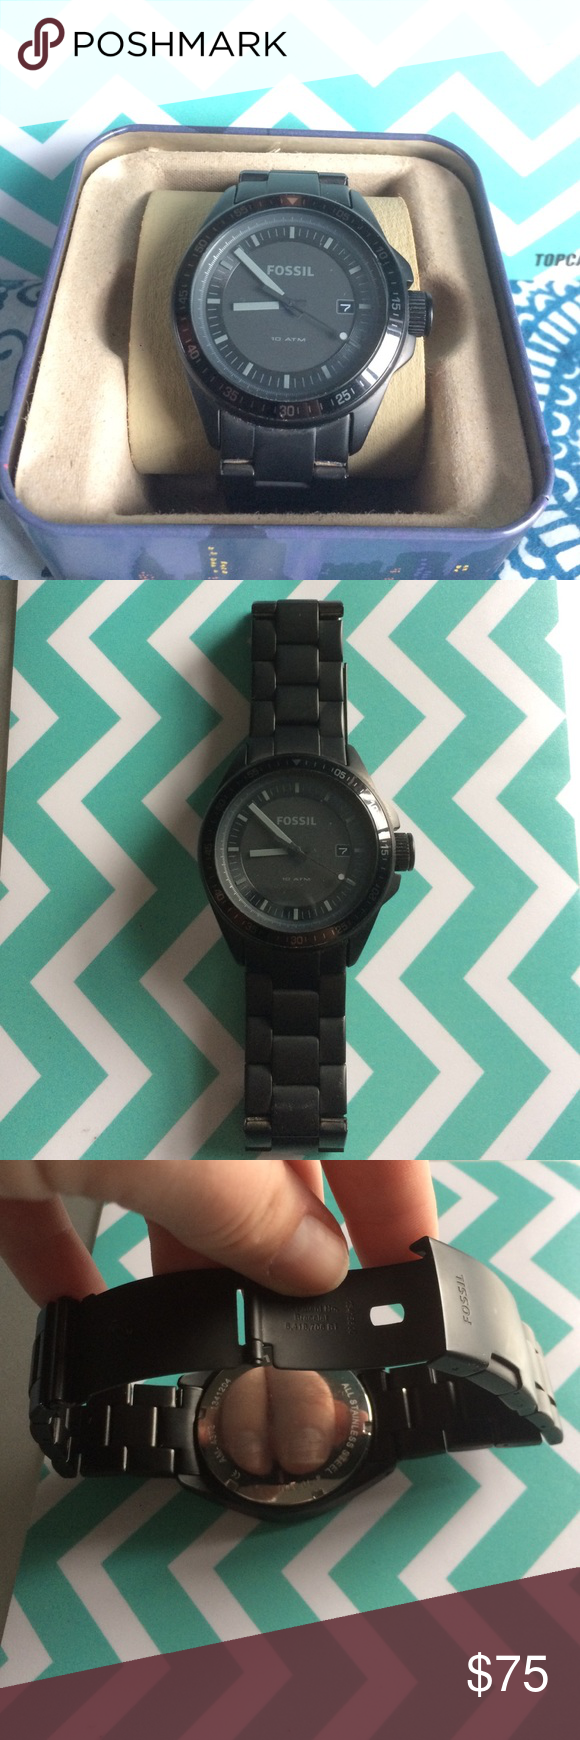 Fossil Men's Watch Gunmetal black with extra links and original box included,  tag also included but has been cut off, needs a new battery Fossil Accessories Watches